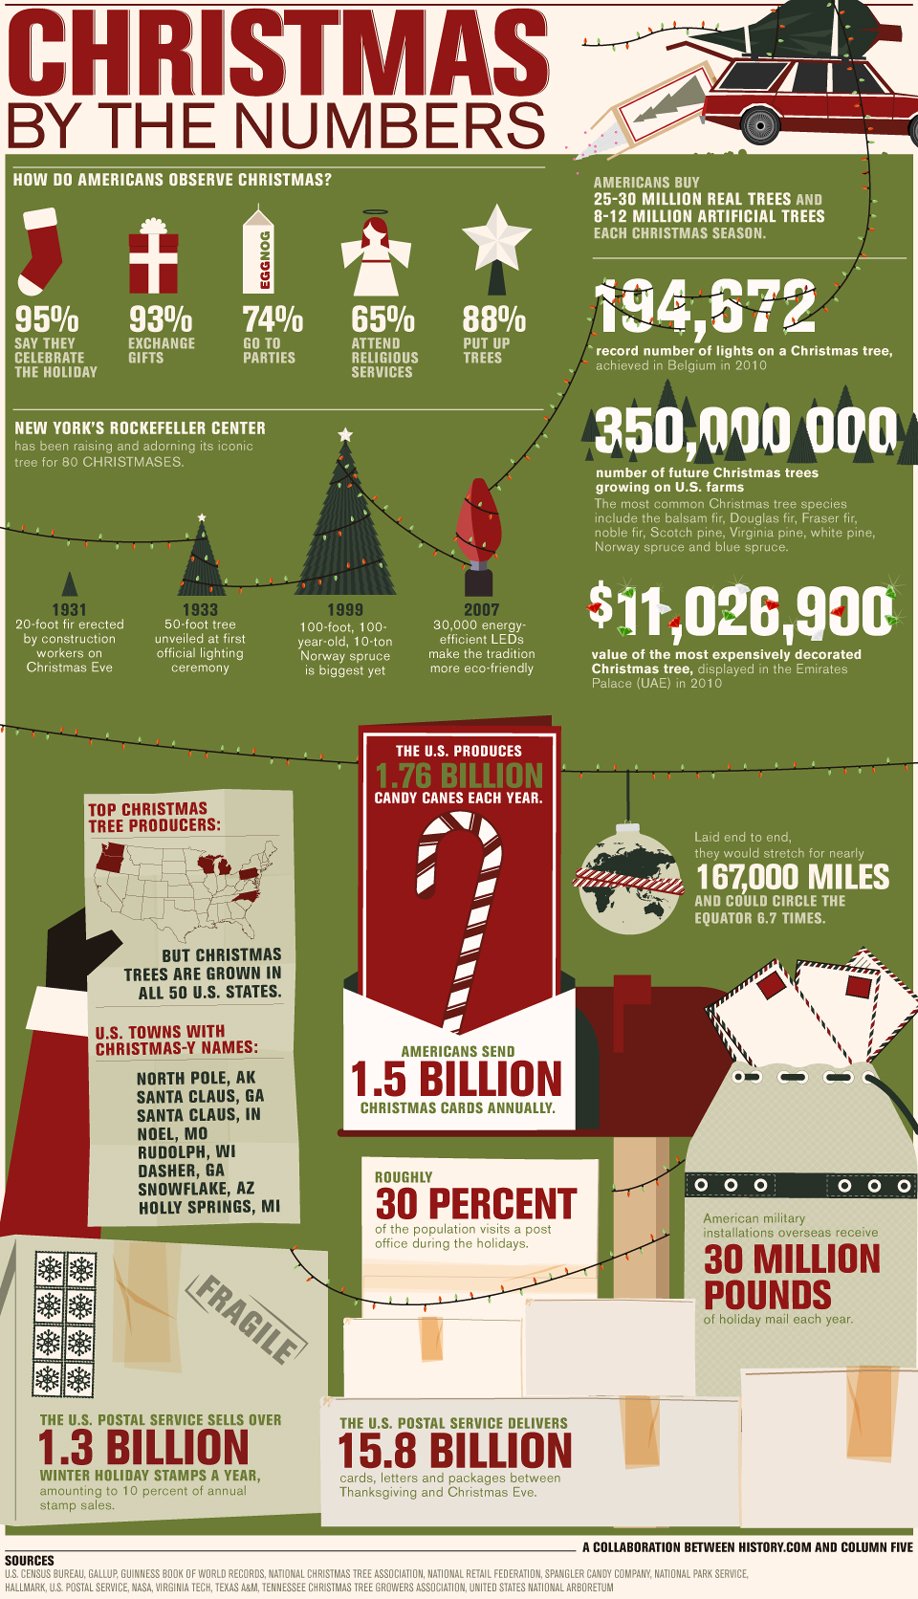 Infographic about Christmas by the numbers